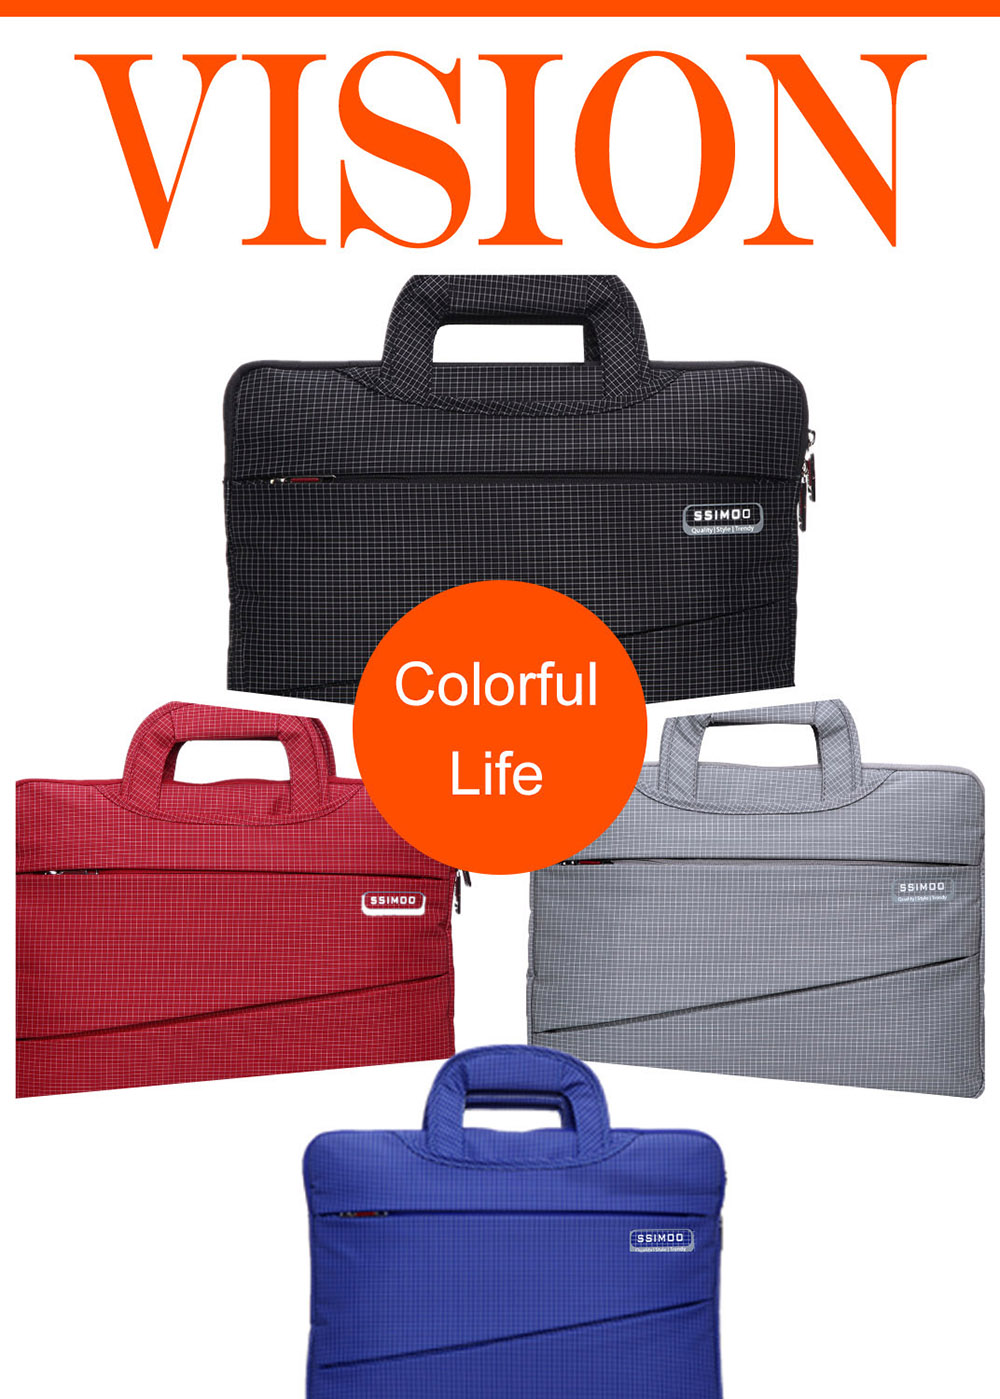 SSIMOO 2 in 1 Business Style Laptop Bag for Notebook 11 / 12 inch